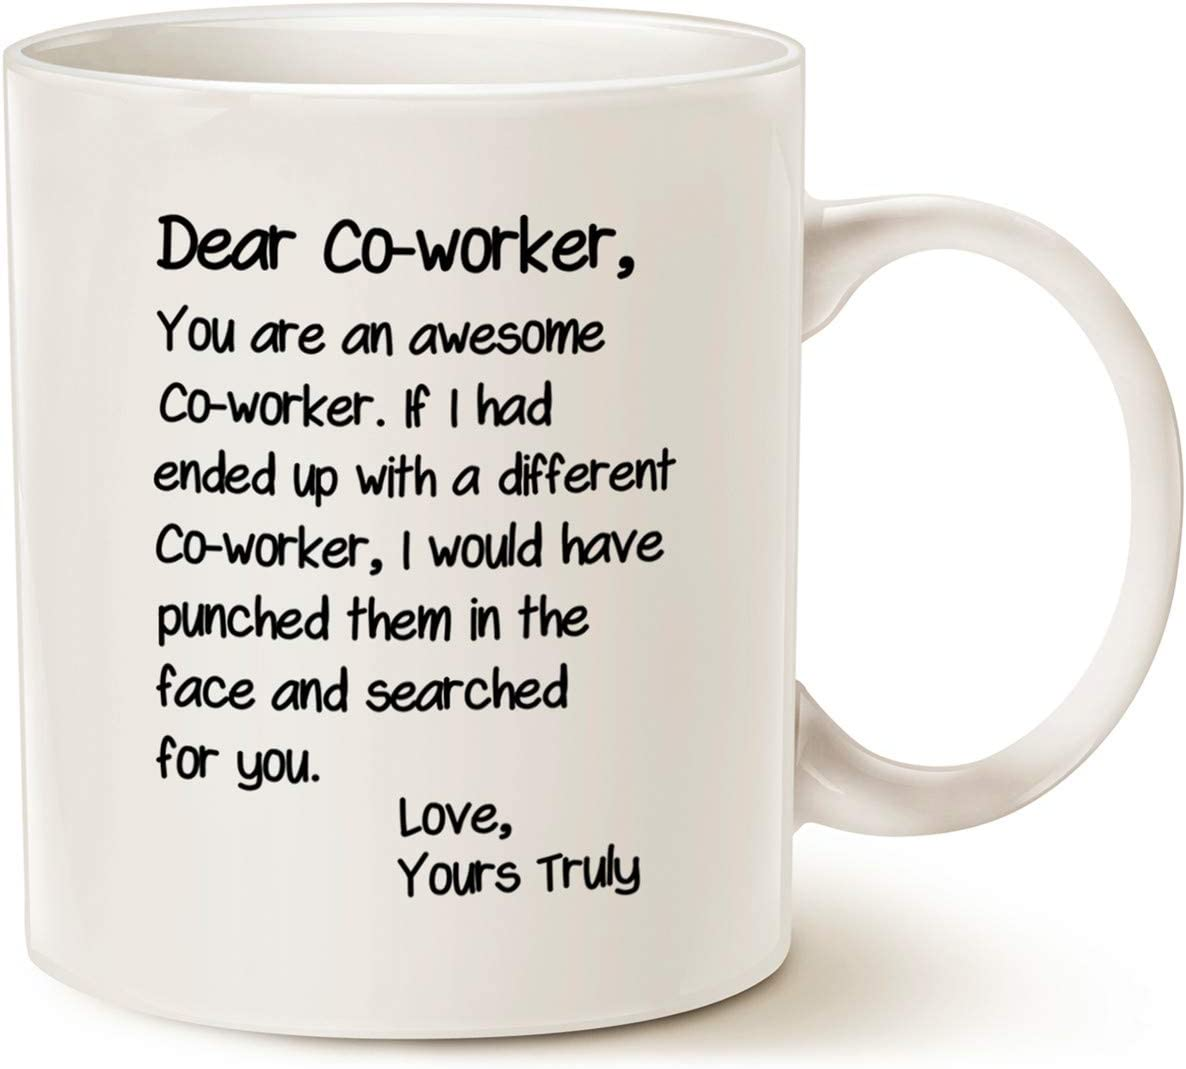 MAUAG Funny Bosses Day Co-worker Coffee Mug, Best Office Gifts for Coworker Cup, White 11 Oz